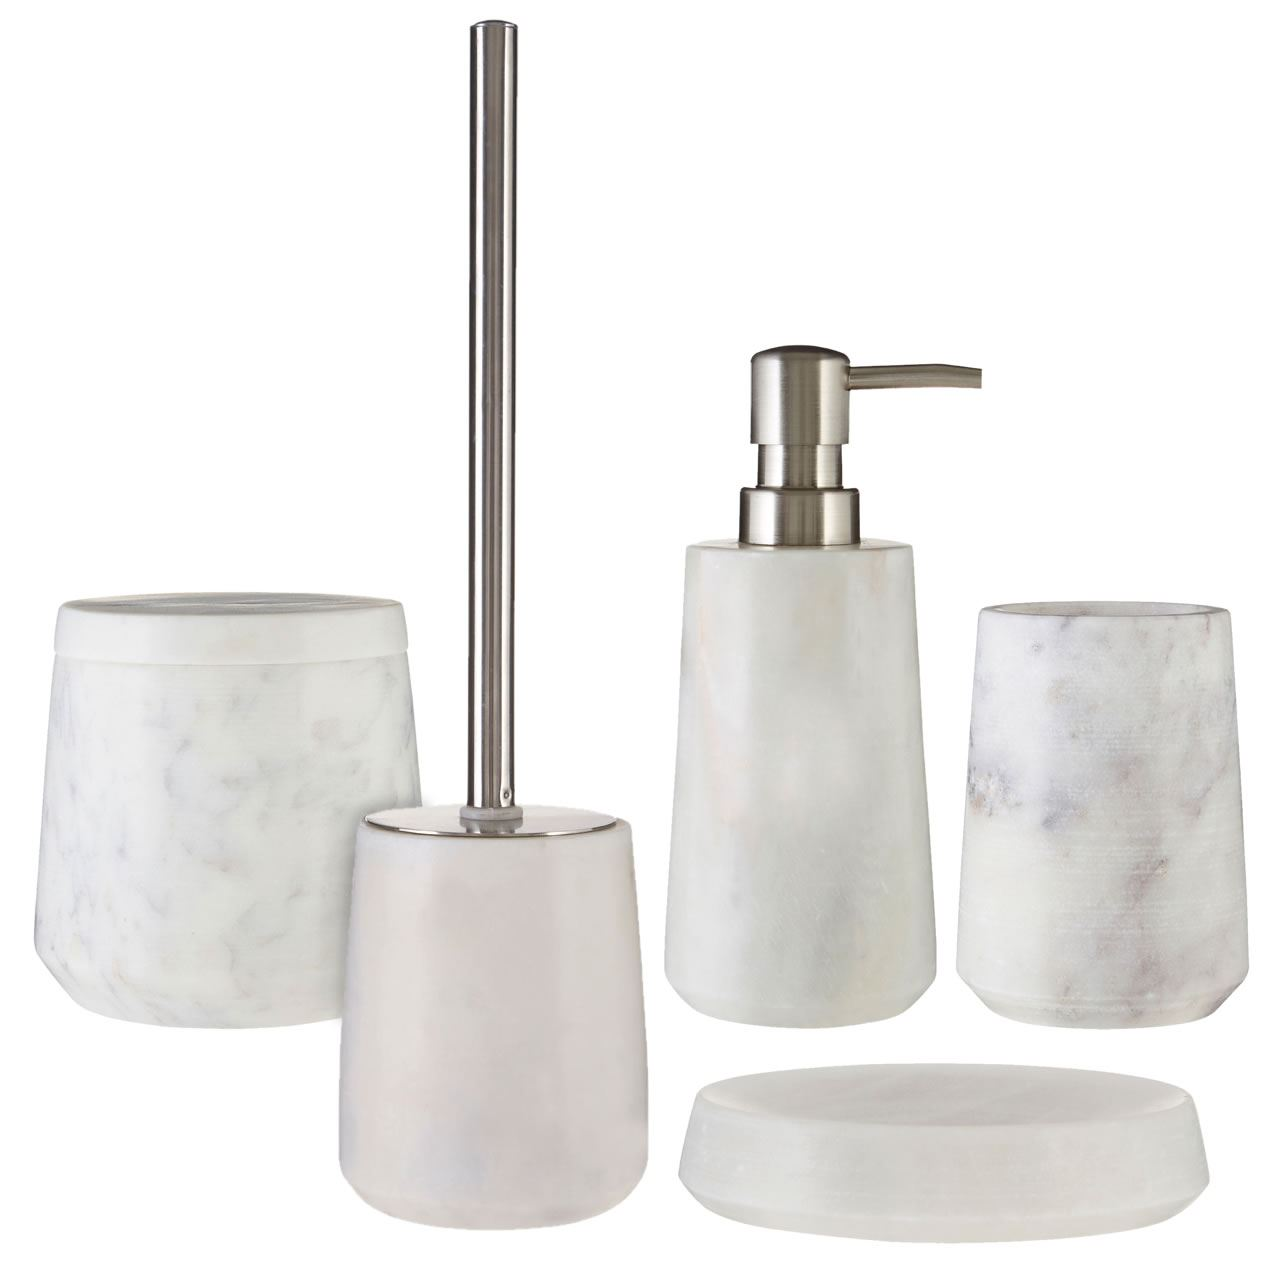 5 piece marble bathroom accessories set soap dish tumbler for Beige bathroom set